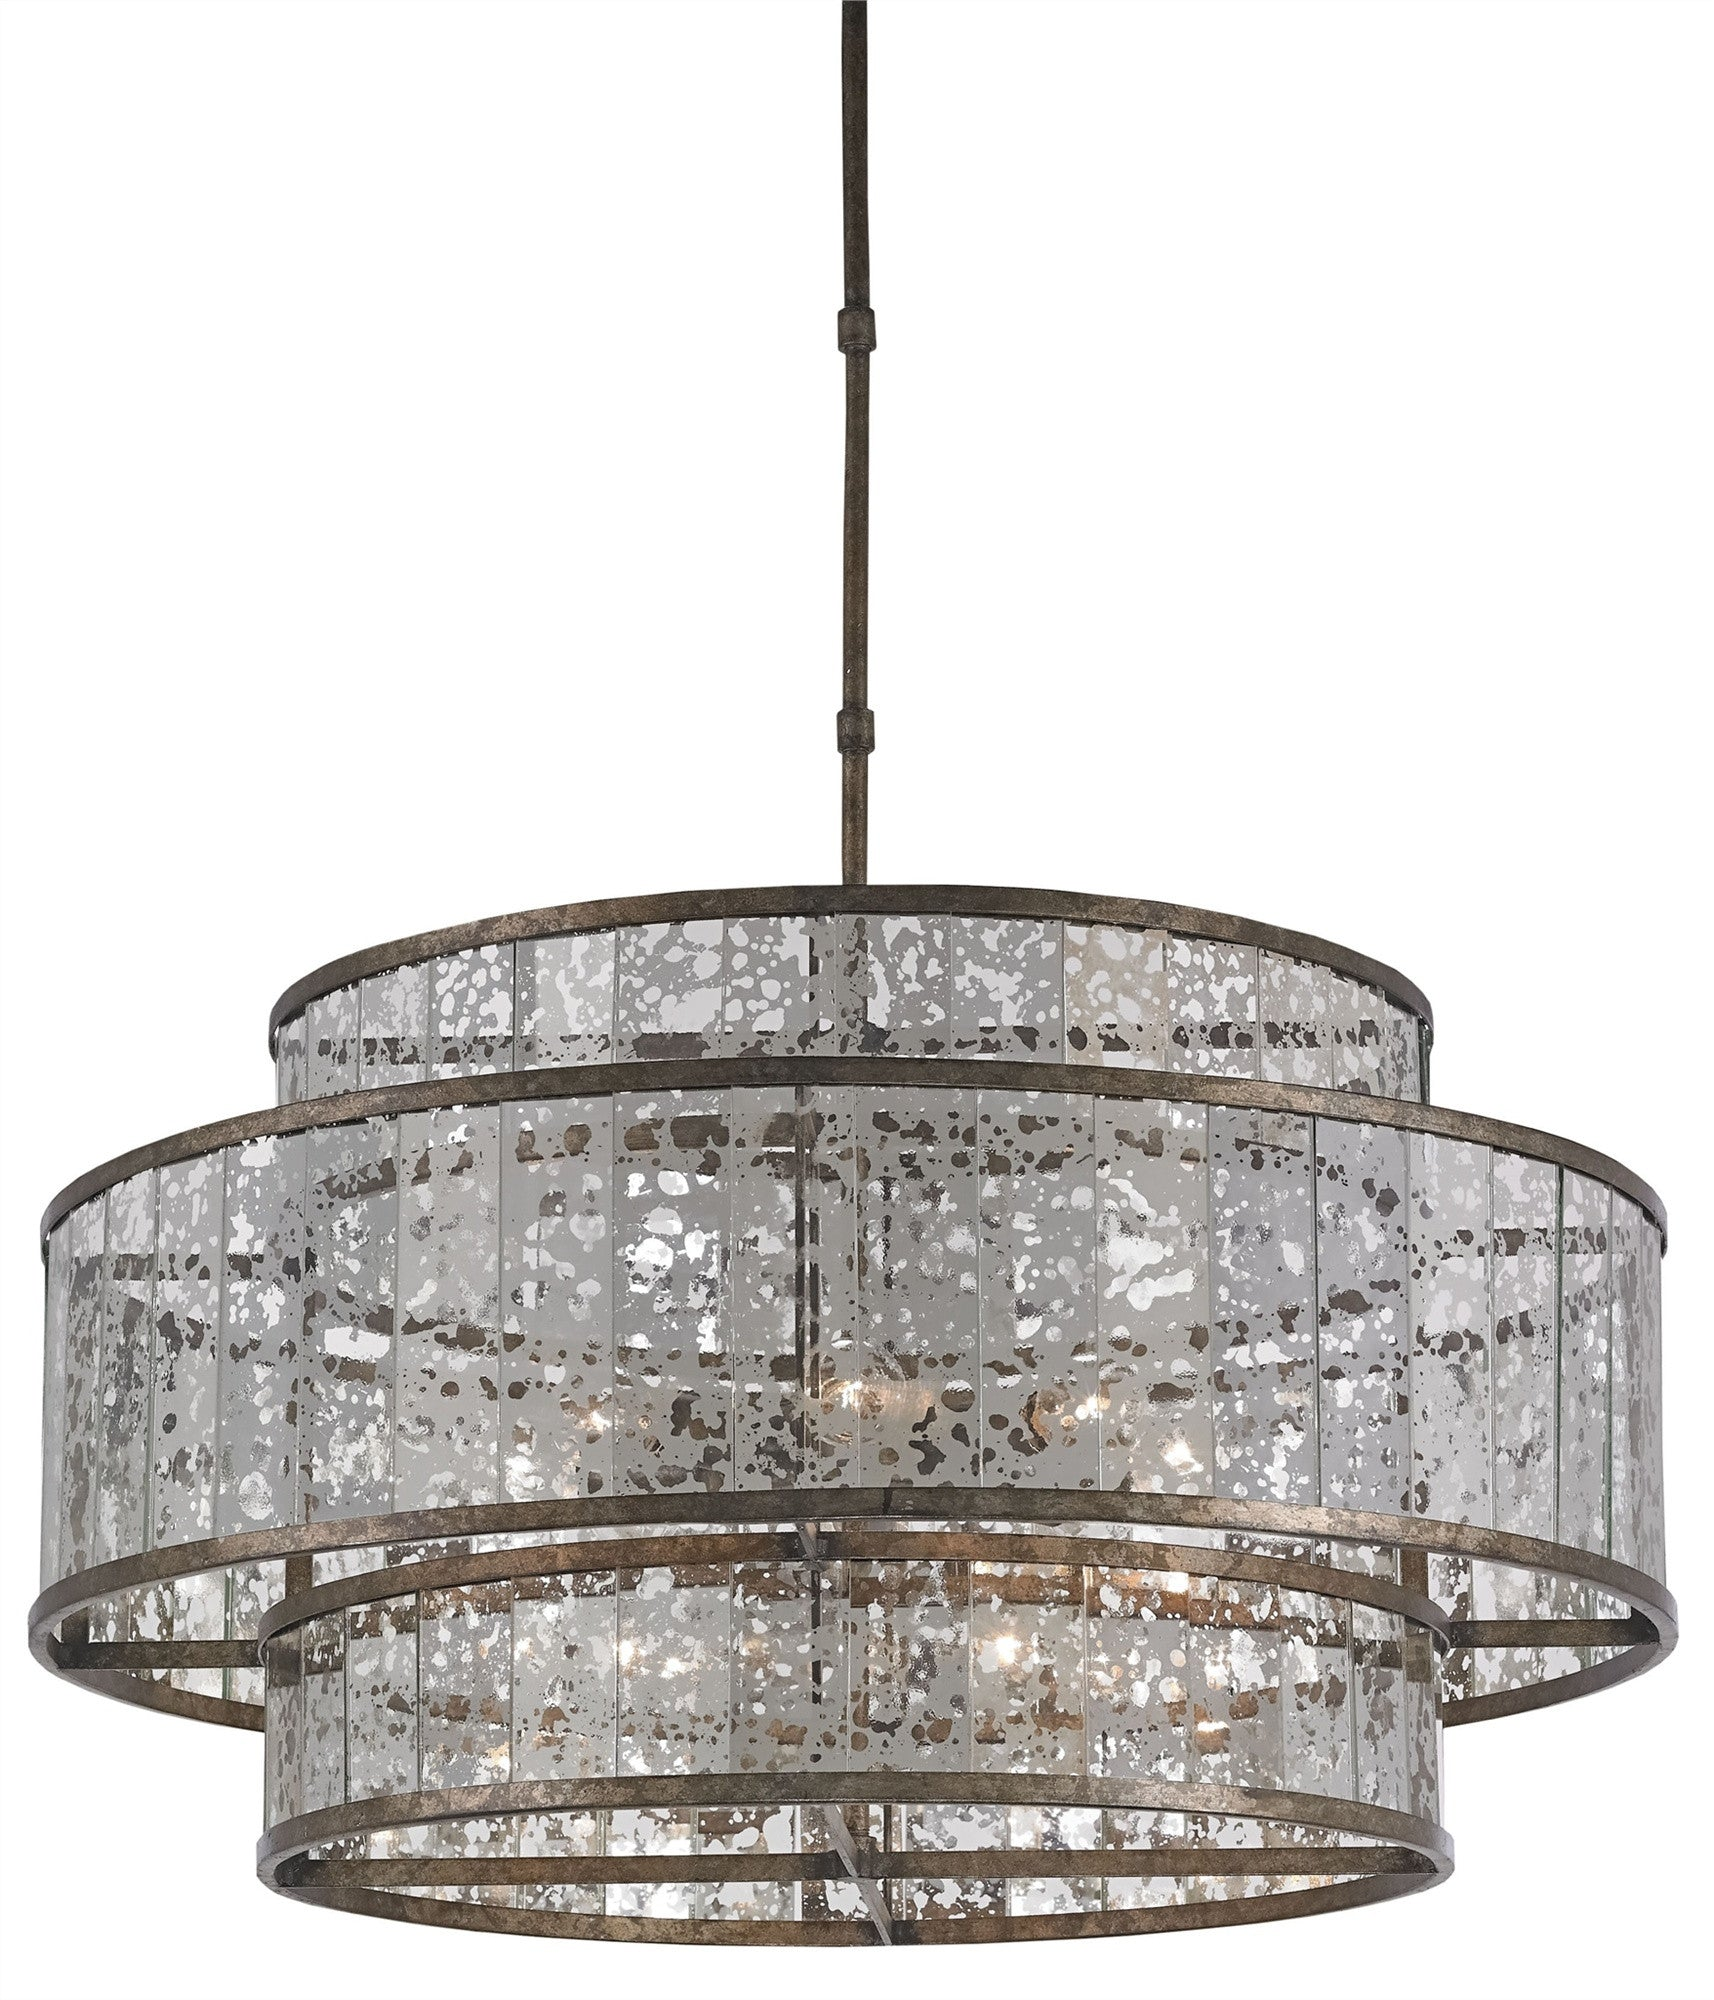 Currey And Company Coral Chandelier: Fantine Chandelier Design By Currey & Company